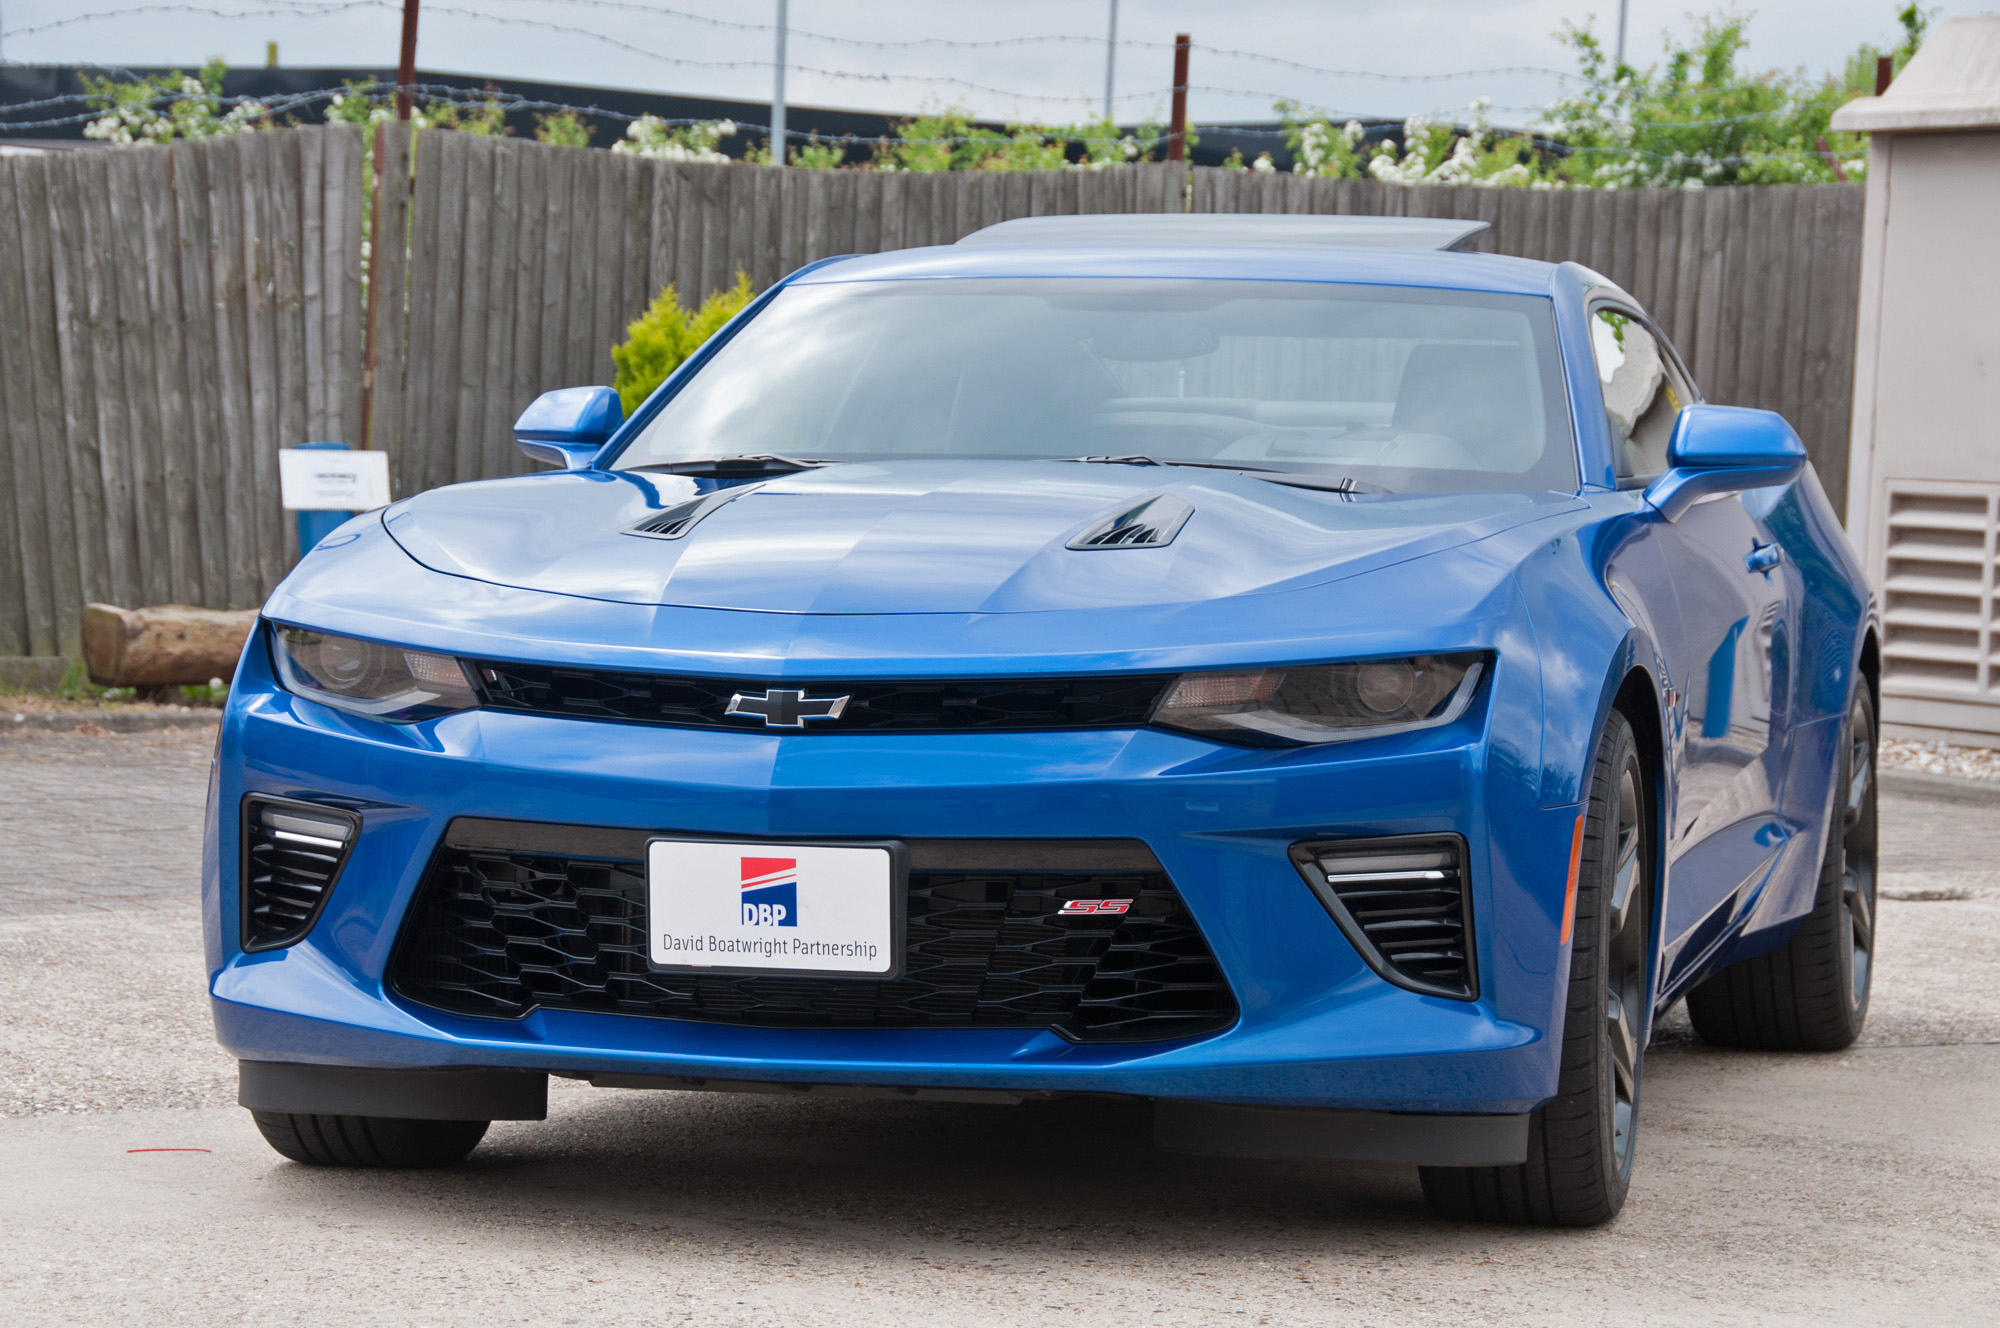 2016 Chevrolet Camaro 2ss David Boatwright Partnership